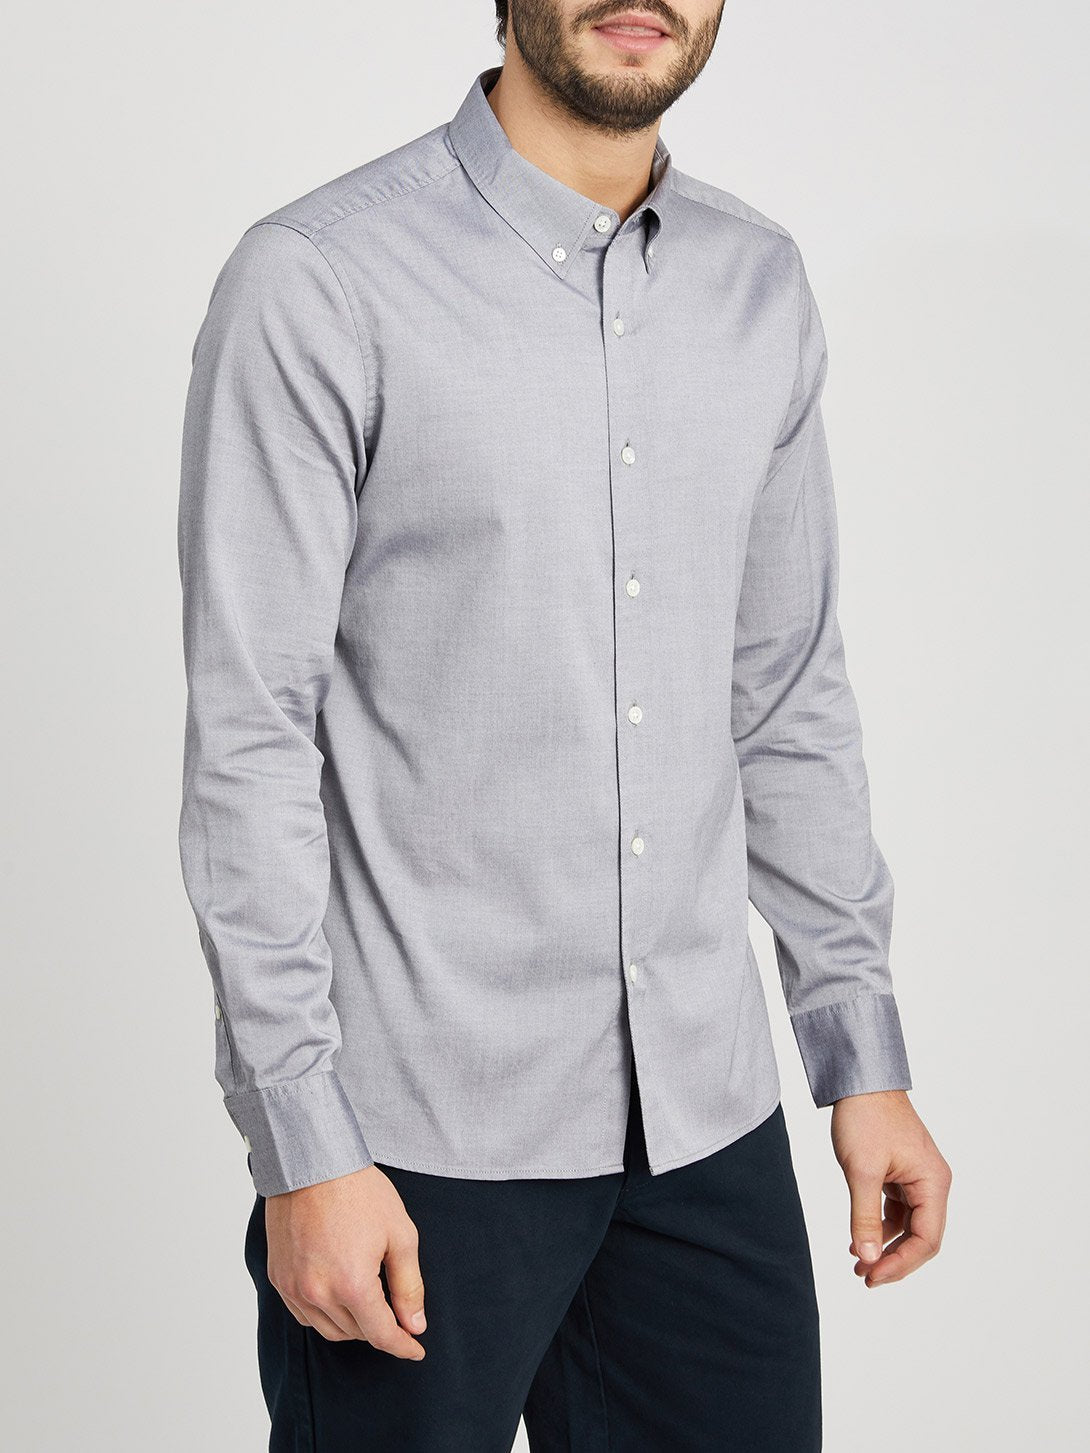 LIGHT GREY button down shirt for men fulton pinpoint oxford shirt ons clothing